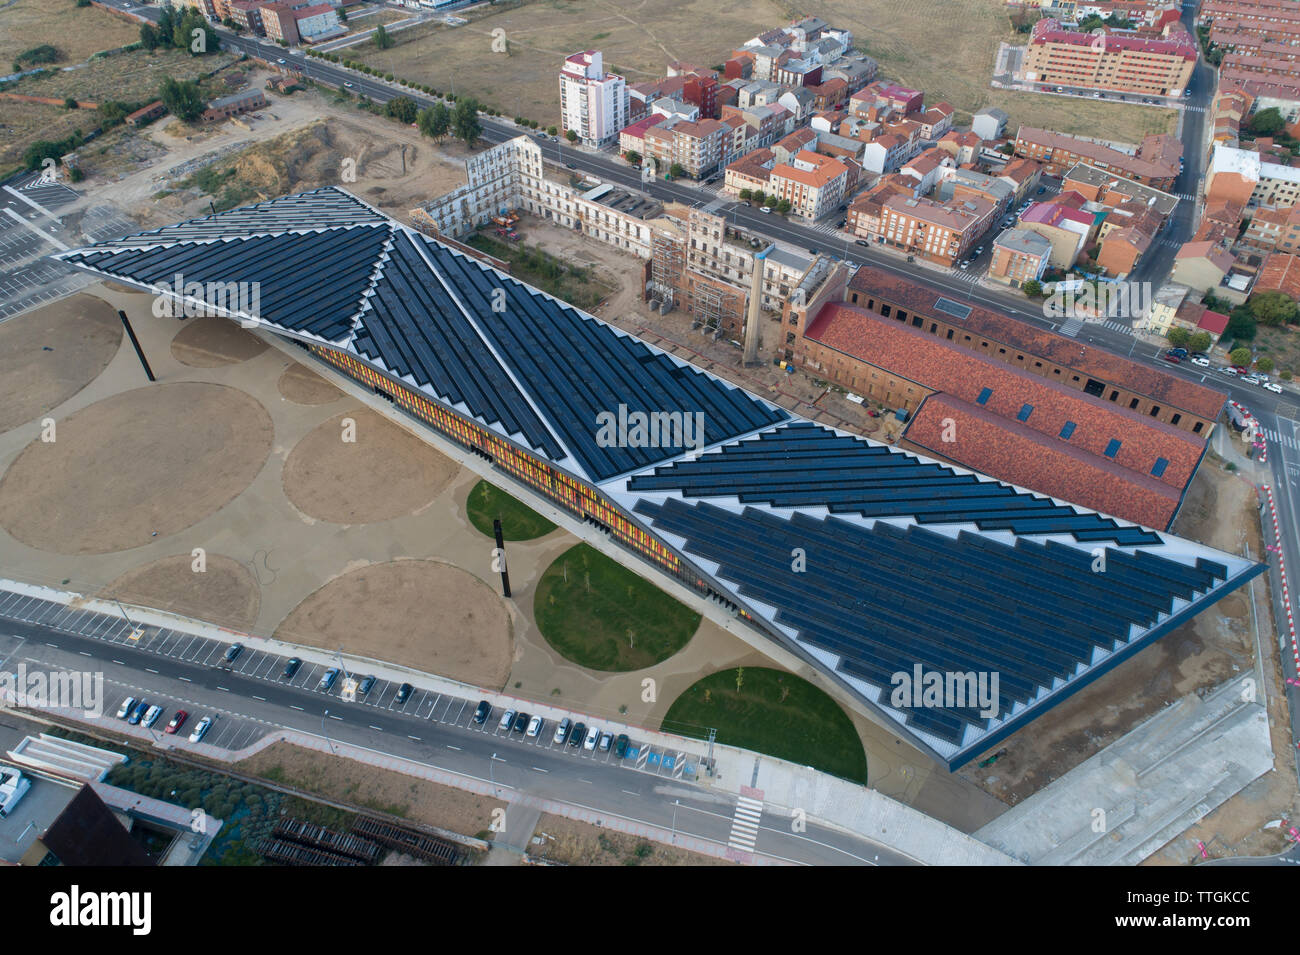 The palace of Congresses and Exhibitions of LeÌ_n, Spain. - Stock Image